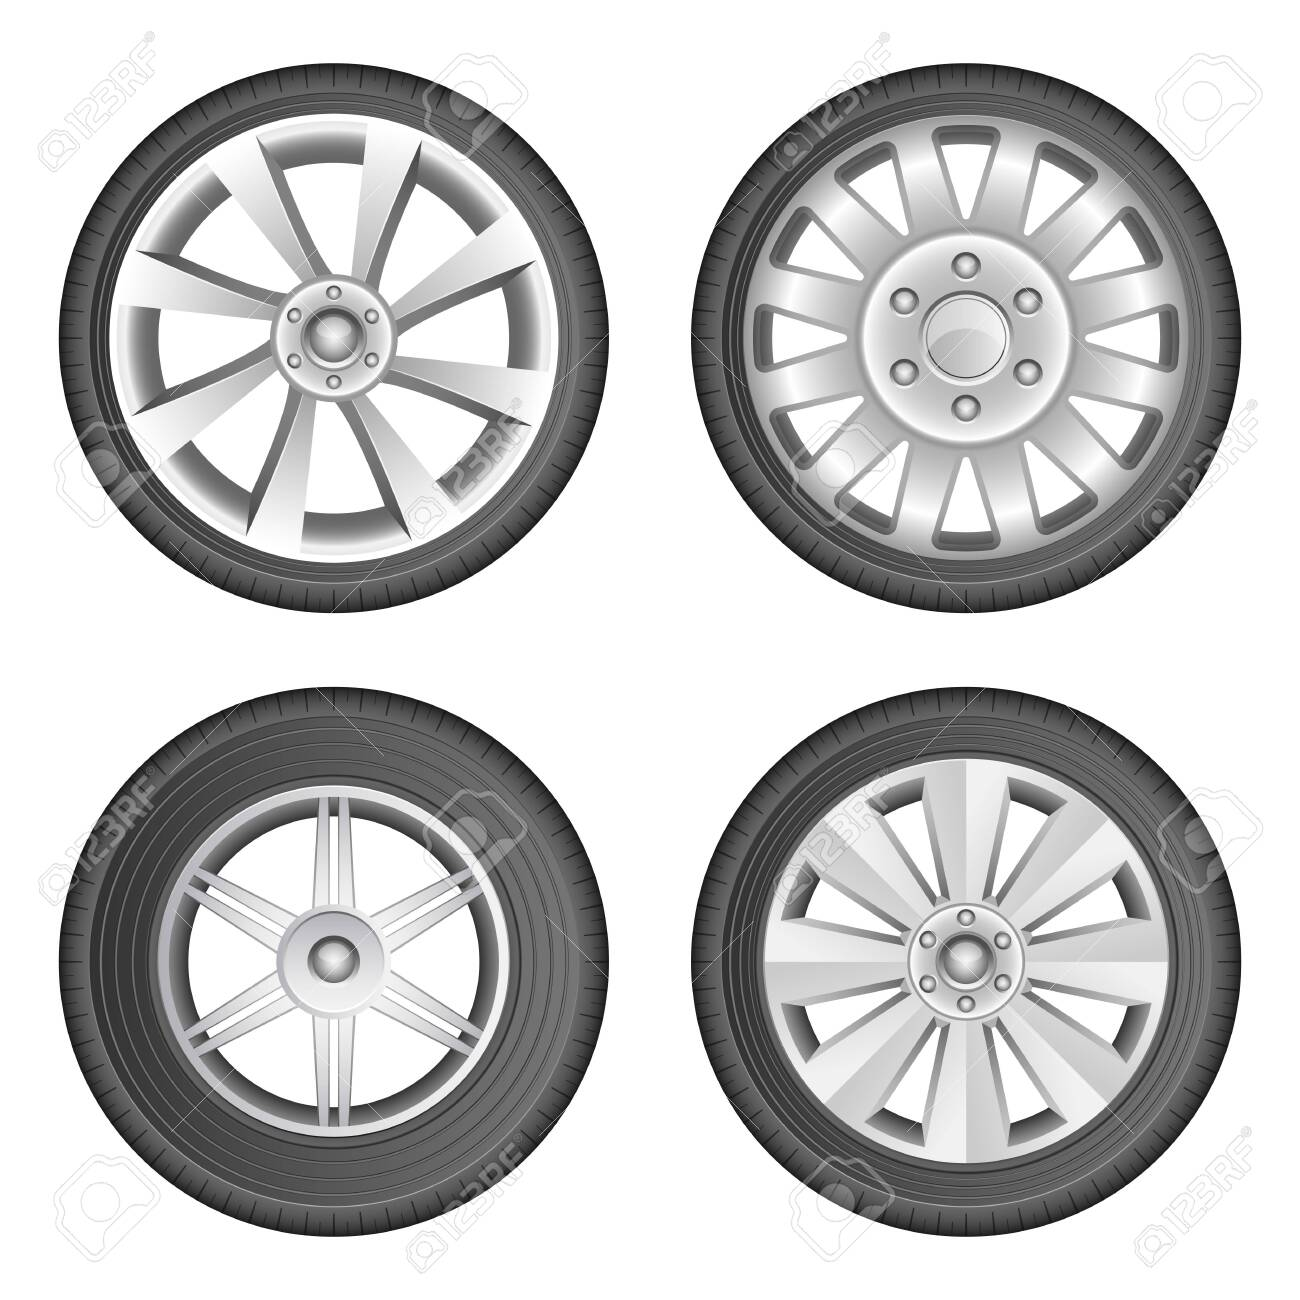 Car tyre vector design illustration isolated on white background - 151728687